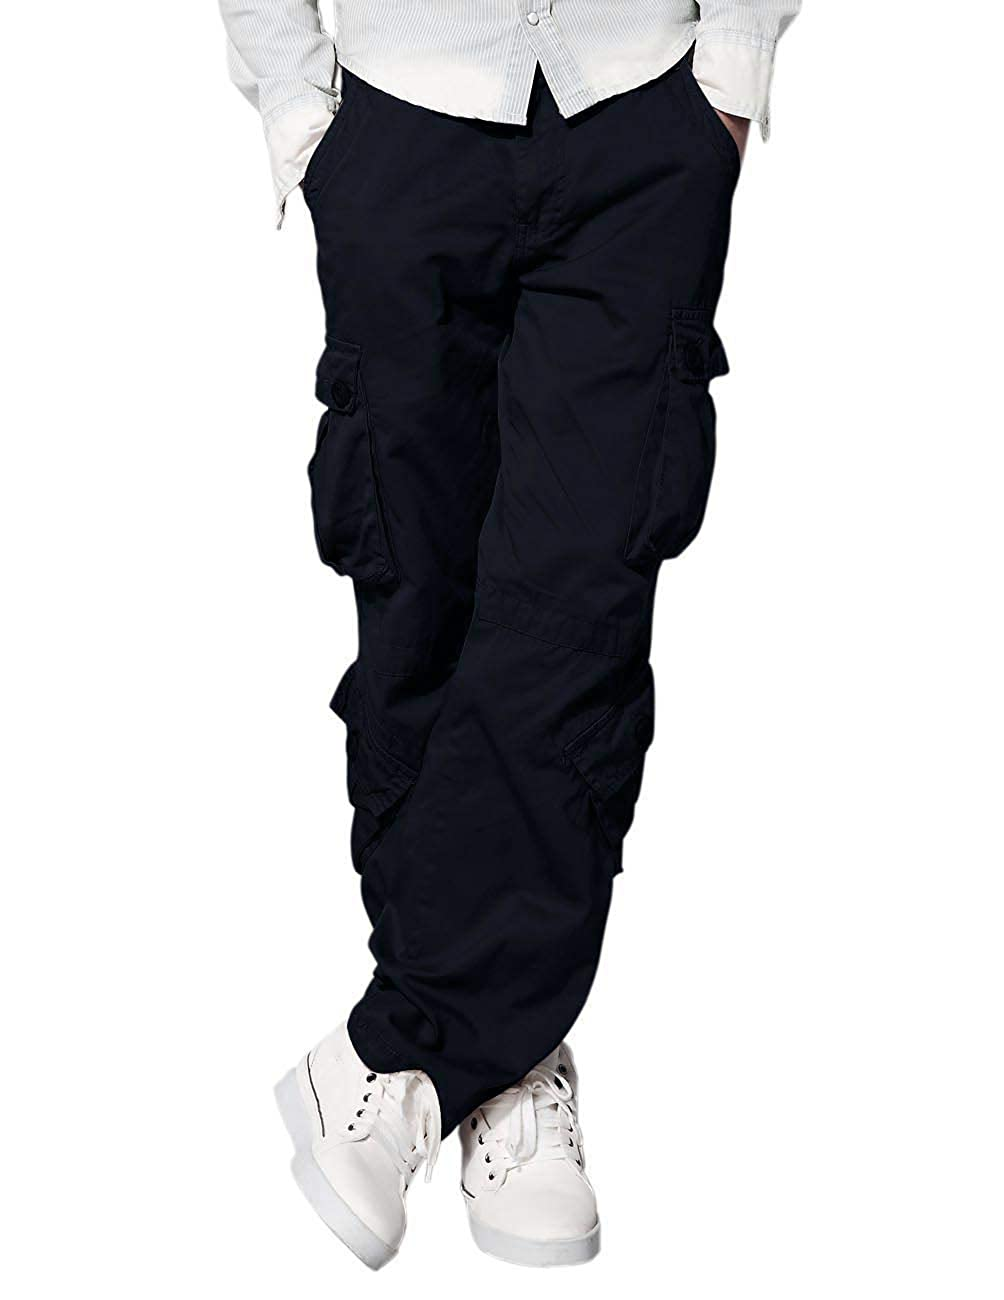 1cd629ef70 Match Men's Wild Cargo Pants at Amazon Men's Clothing store: